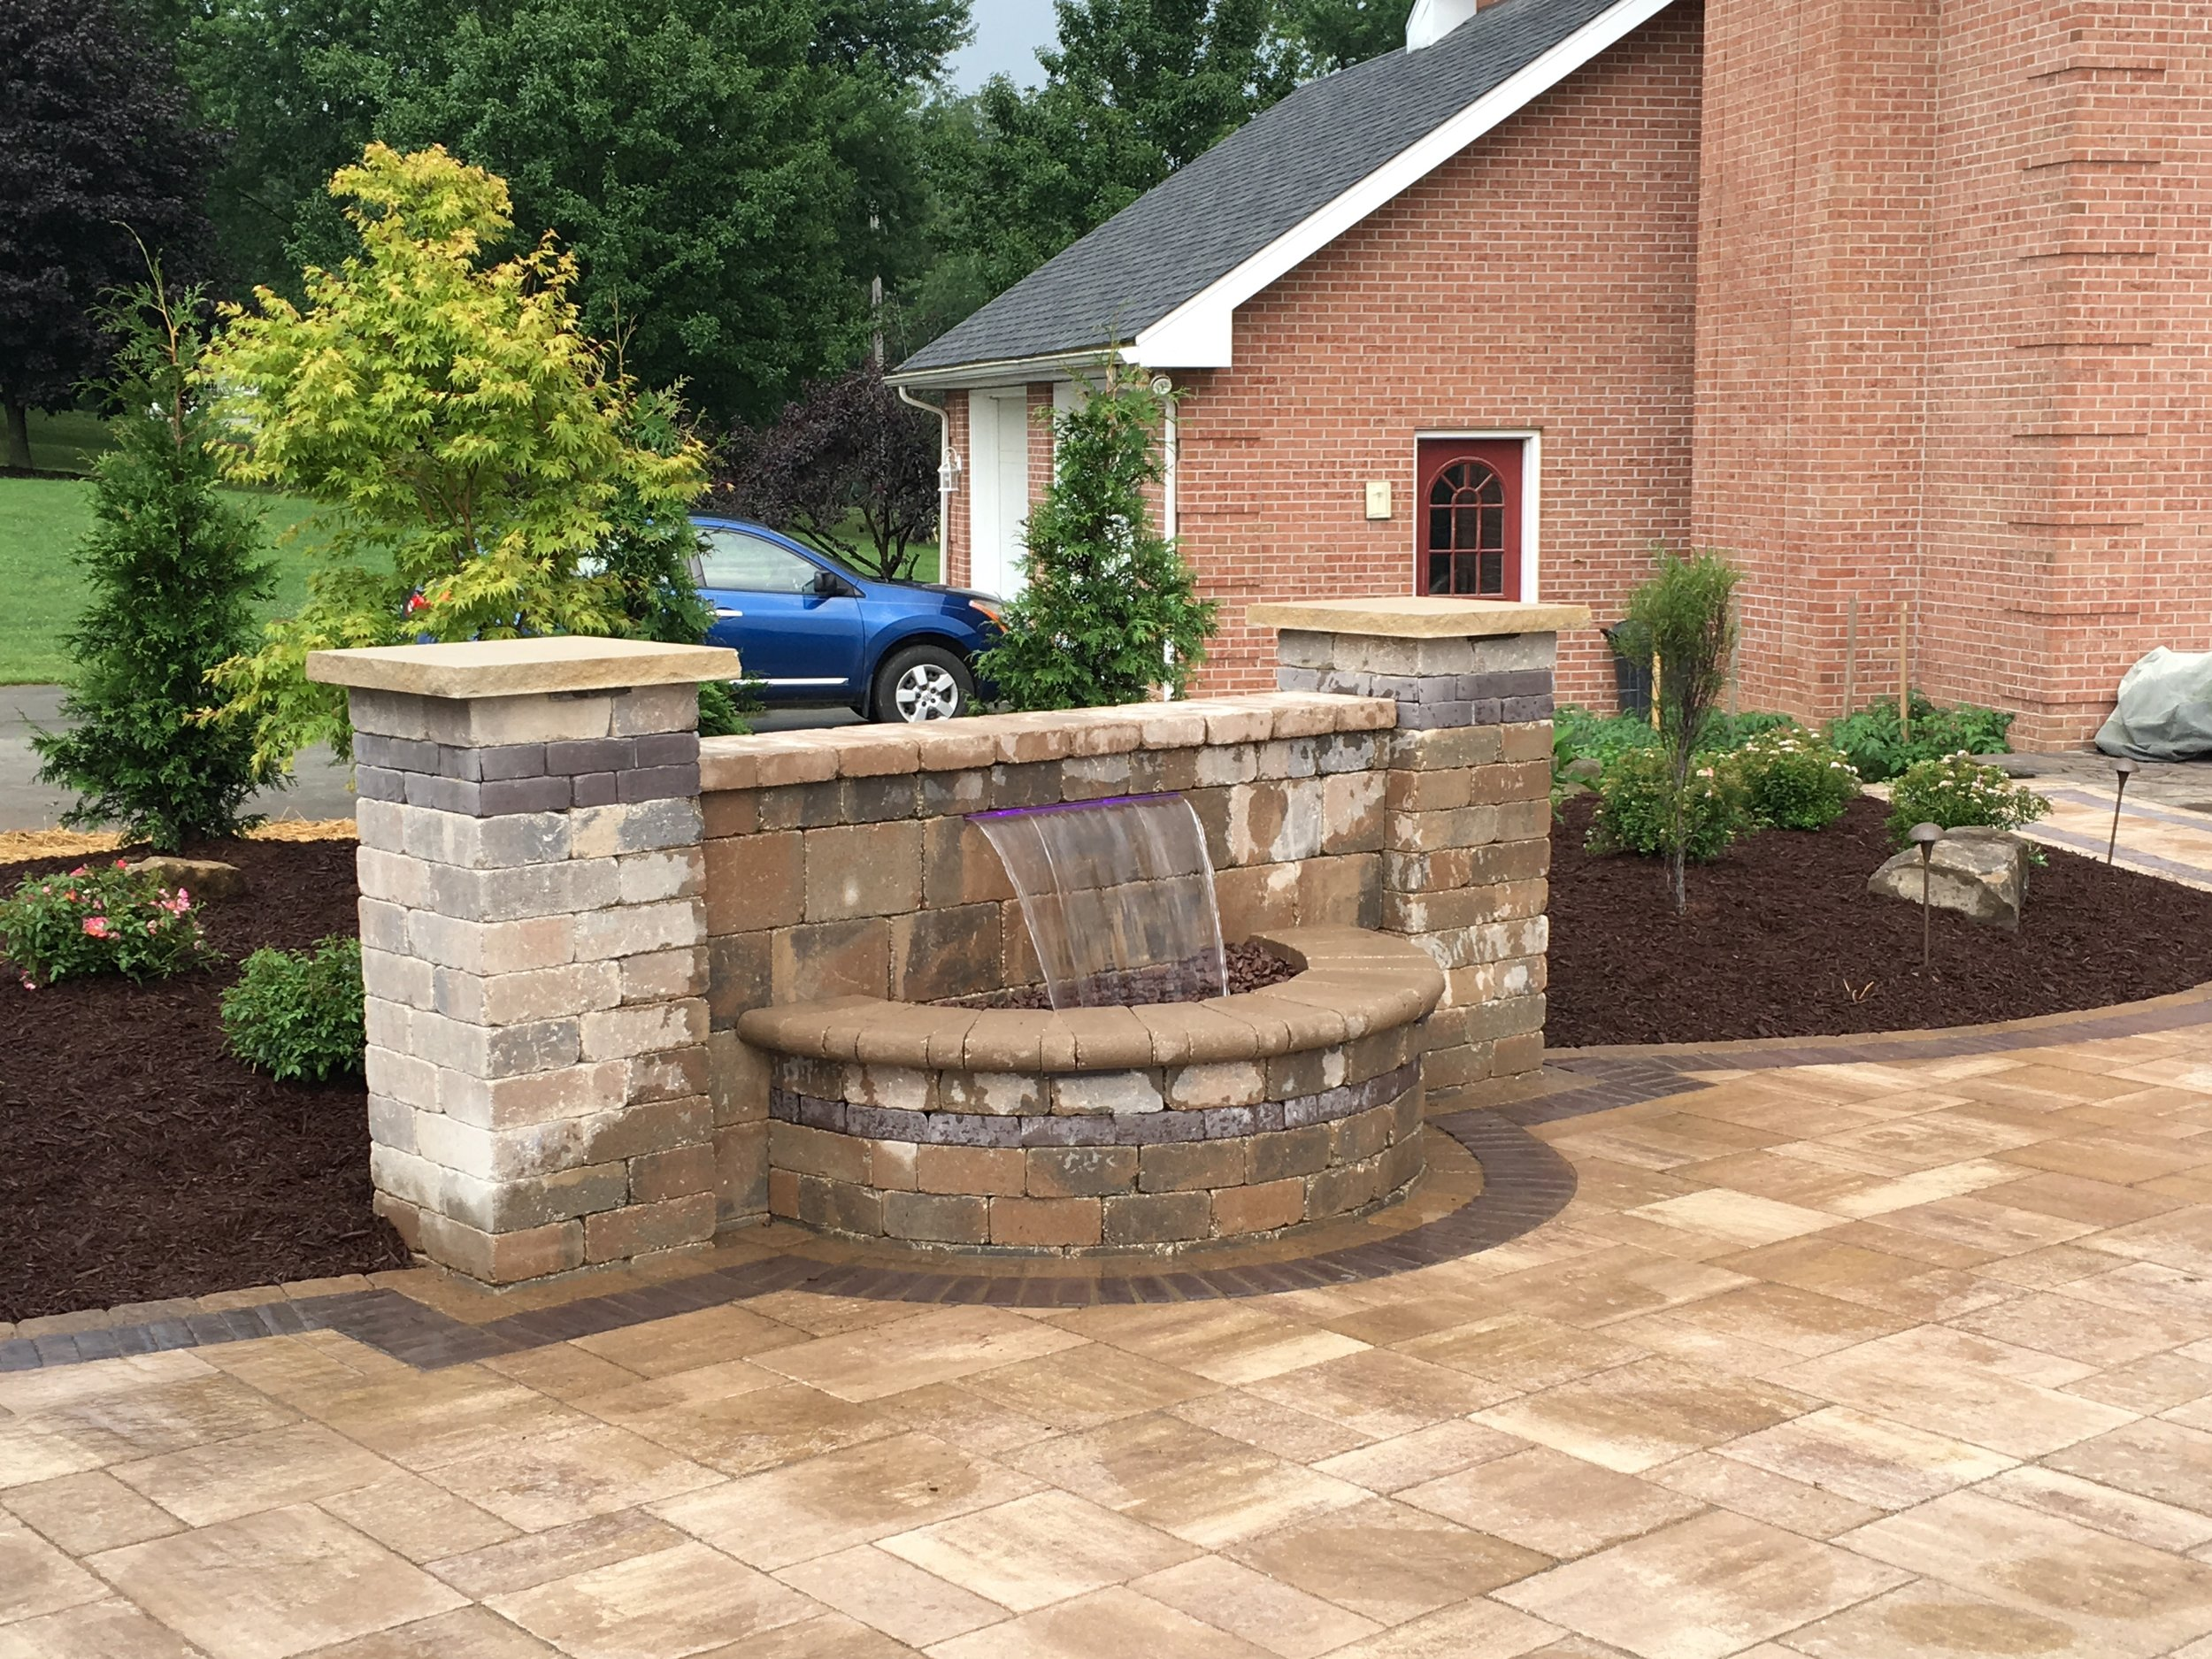 Hardscape installation including driveways and patios in Murrysville, PA